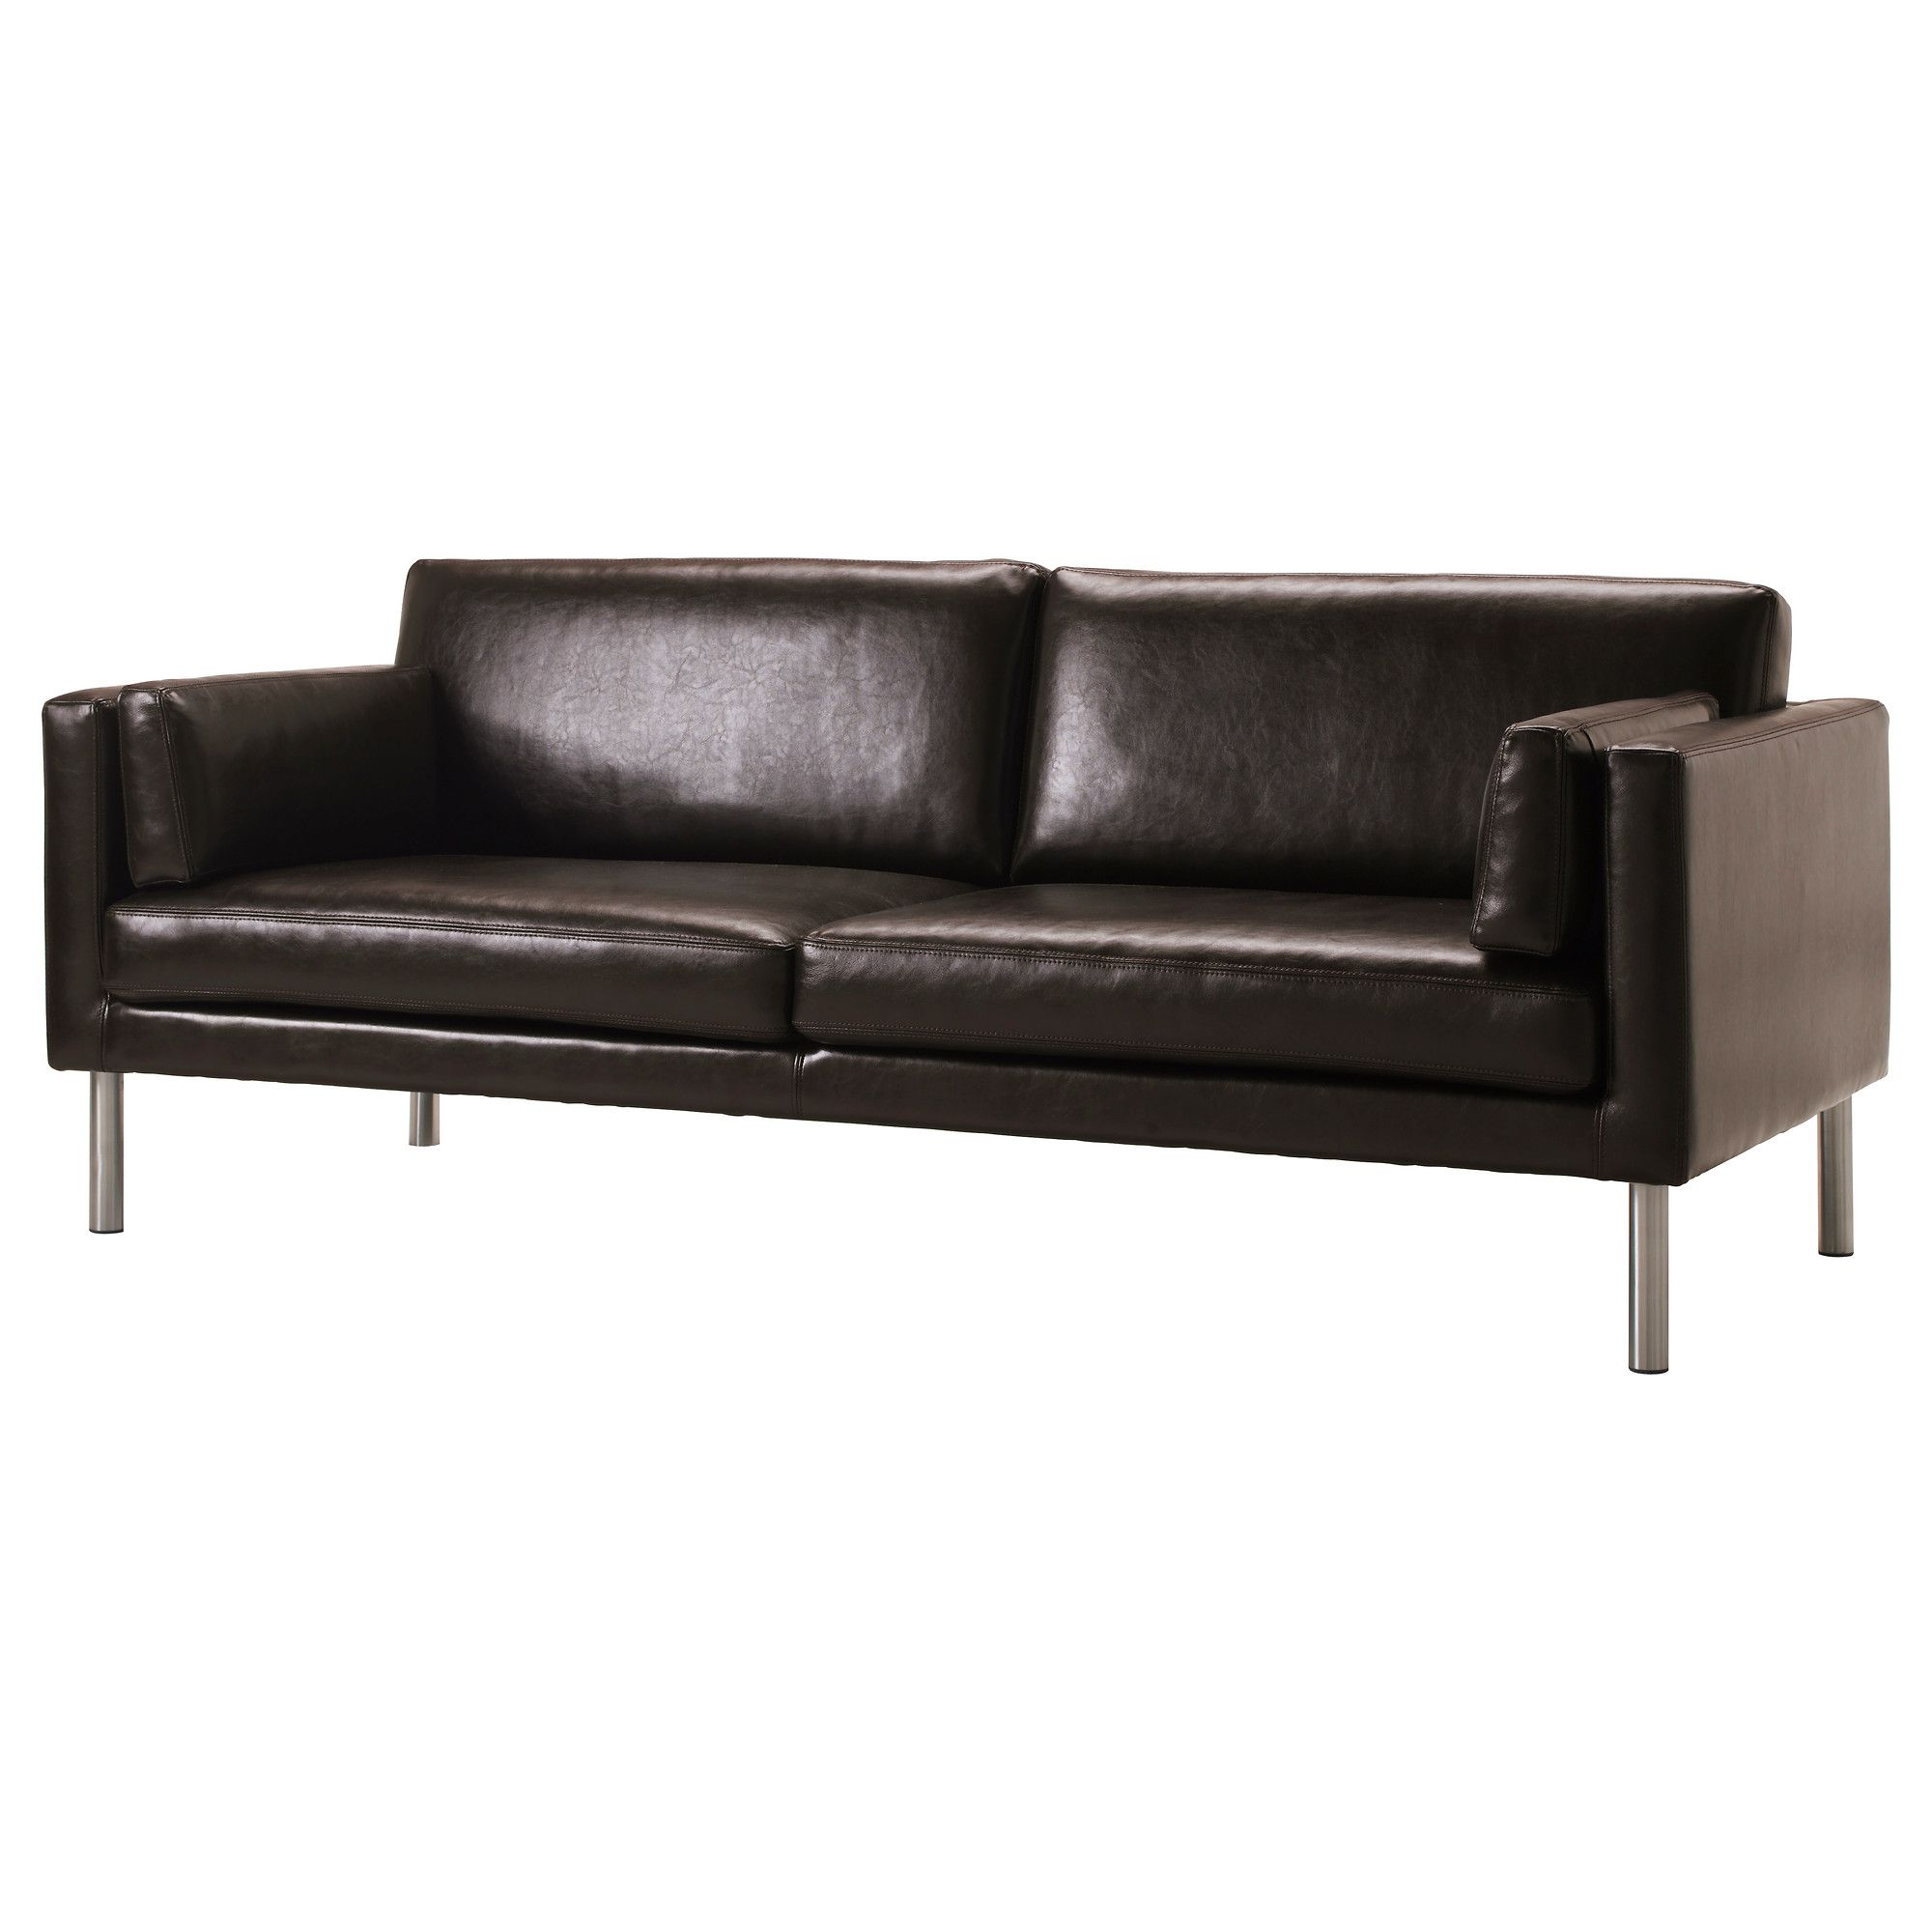 Sofa Säter Ikea SÄter 2 5 Seat Sofa Fräsig Dark Brown 429 00 Article